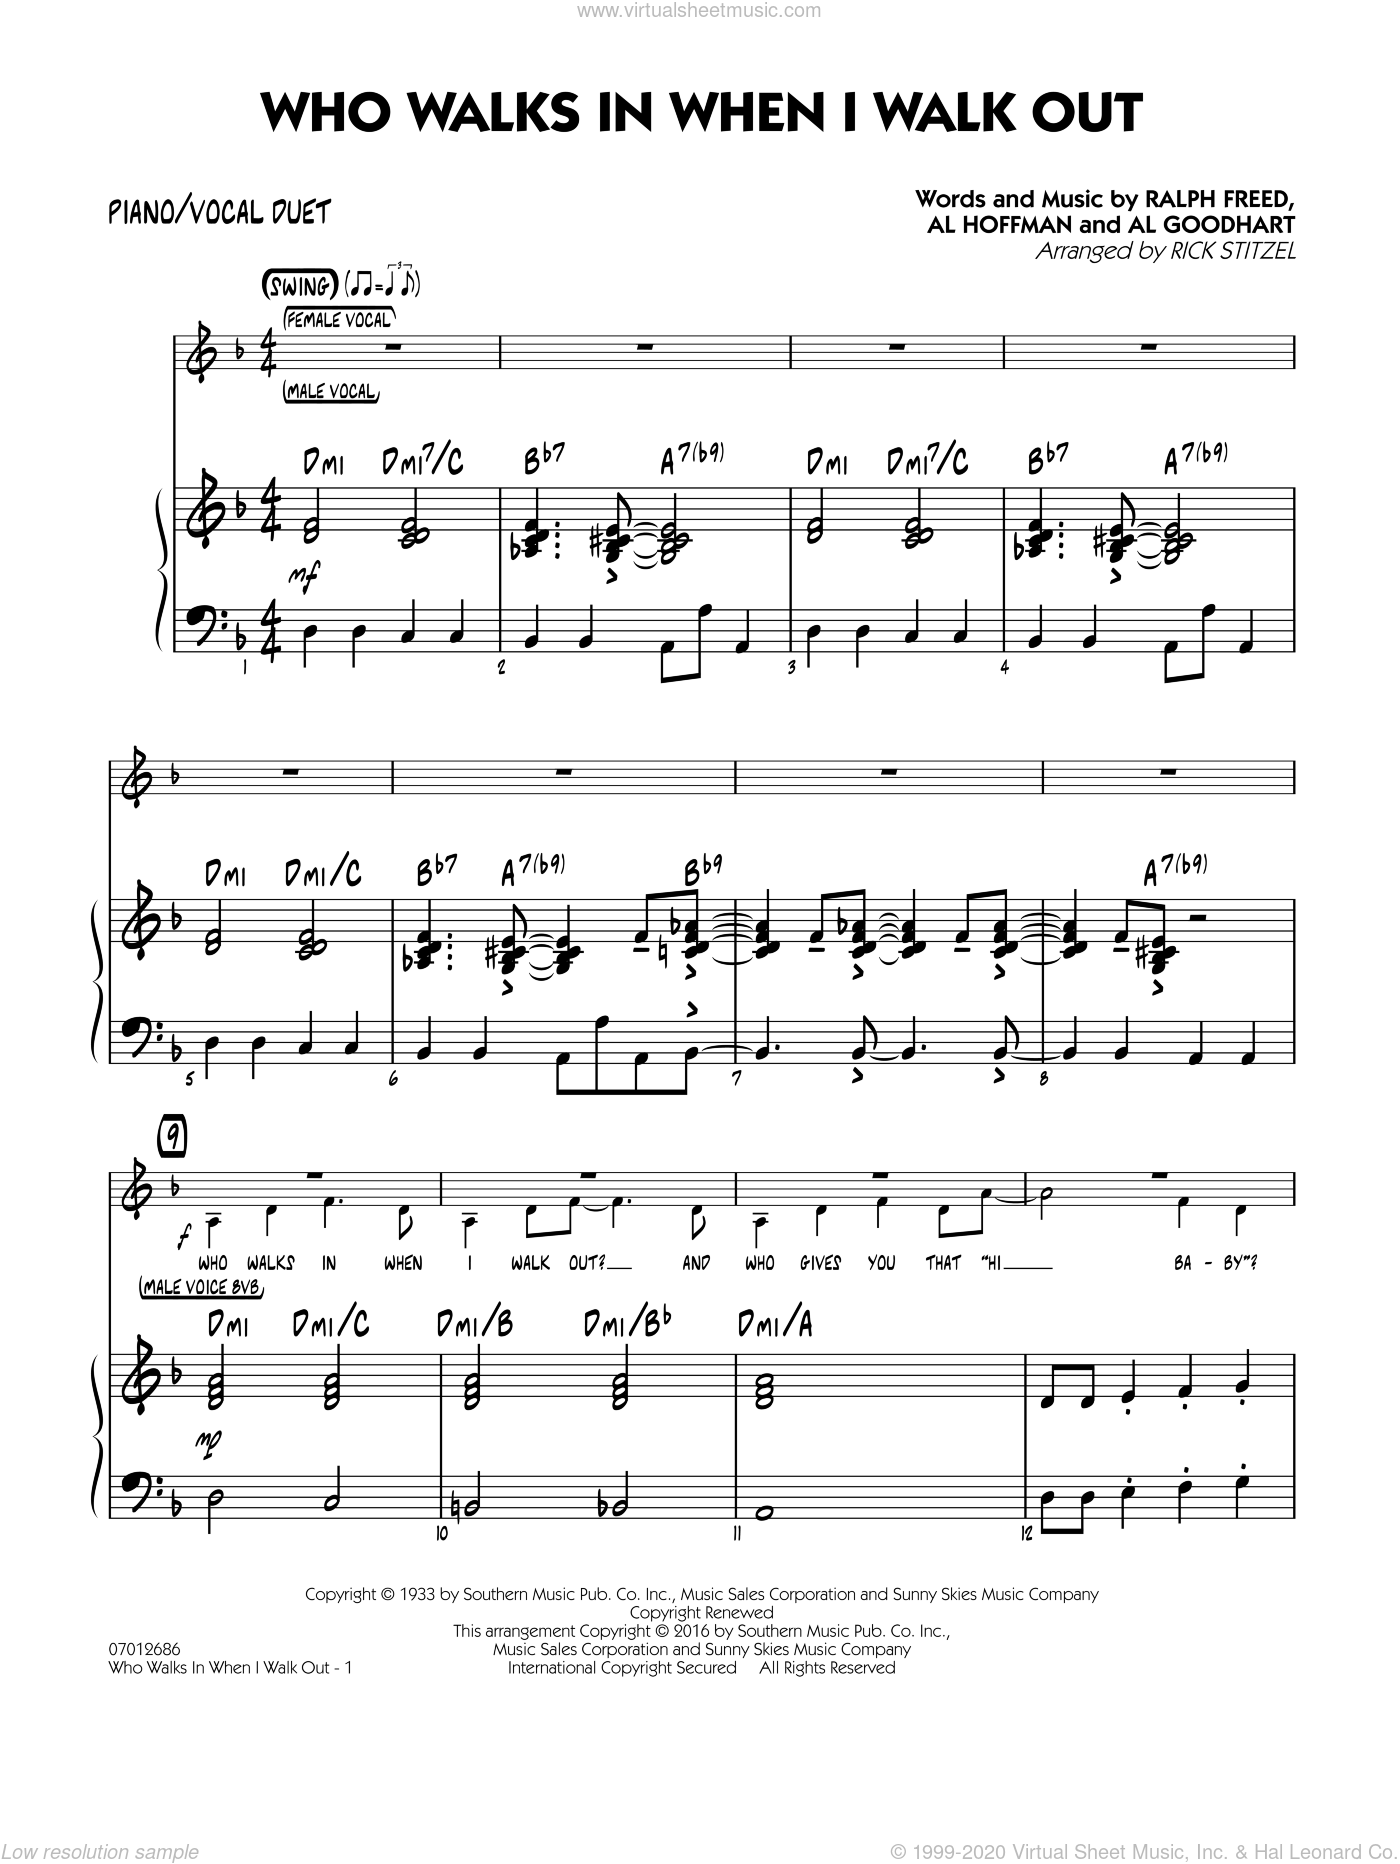 Who Walks In When I Walk Out? (Key: D minor) sheet music for jazz band (piano/vocal duet) by Al Hoffman, Rick Stitzel, Ella Fitzgerald, Louis Armstrong, Al Goodhart and Ralph Freed, intermediate skill level